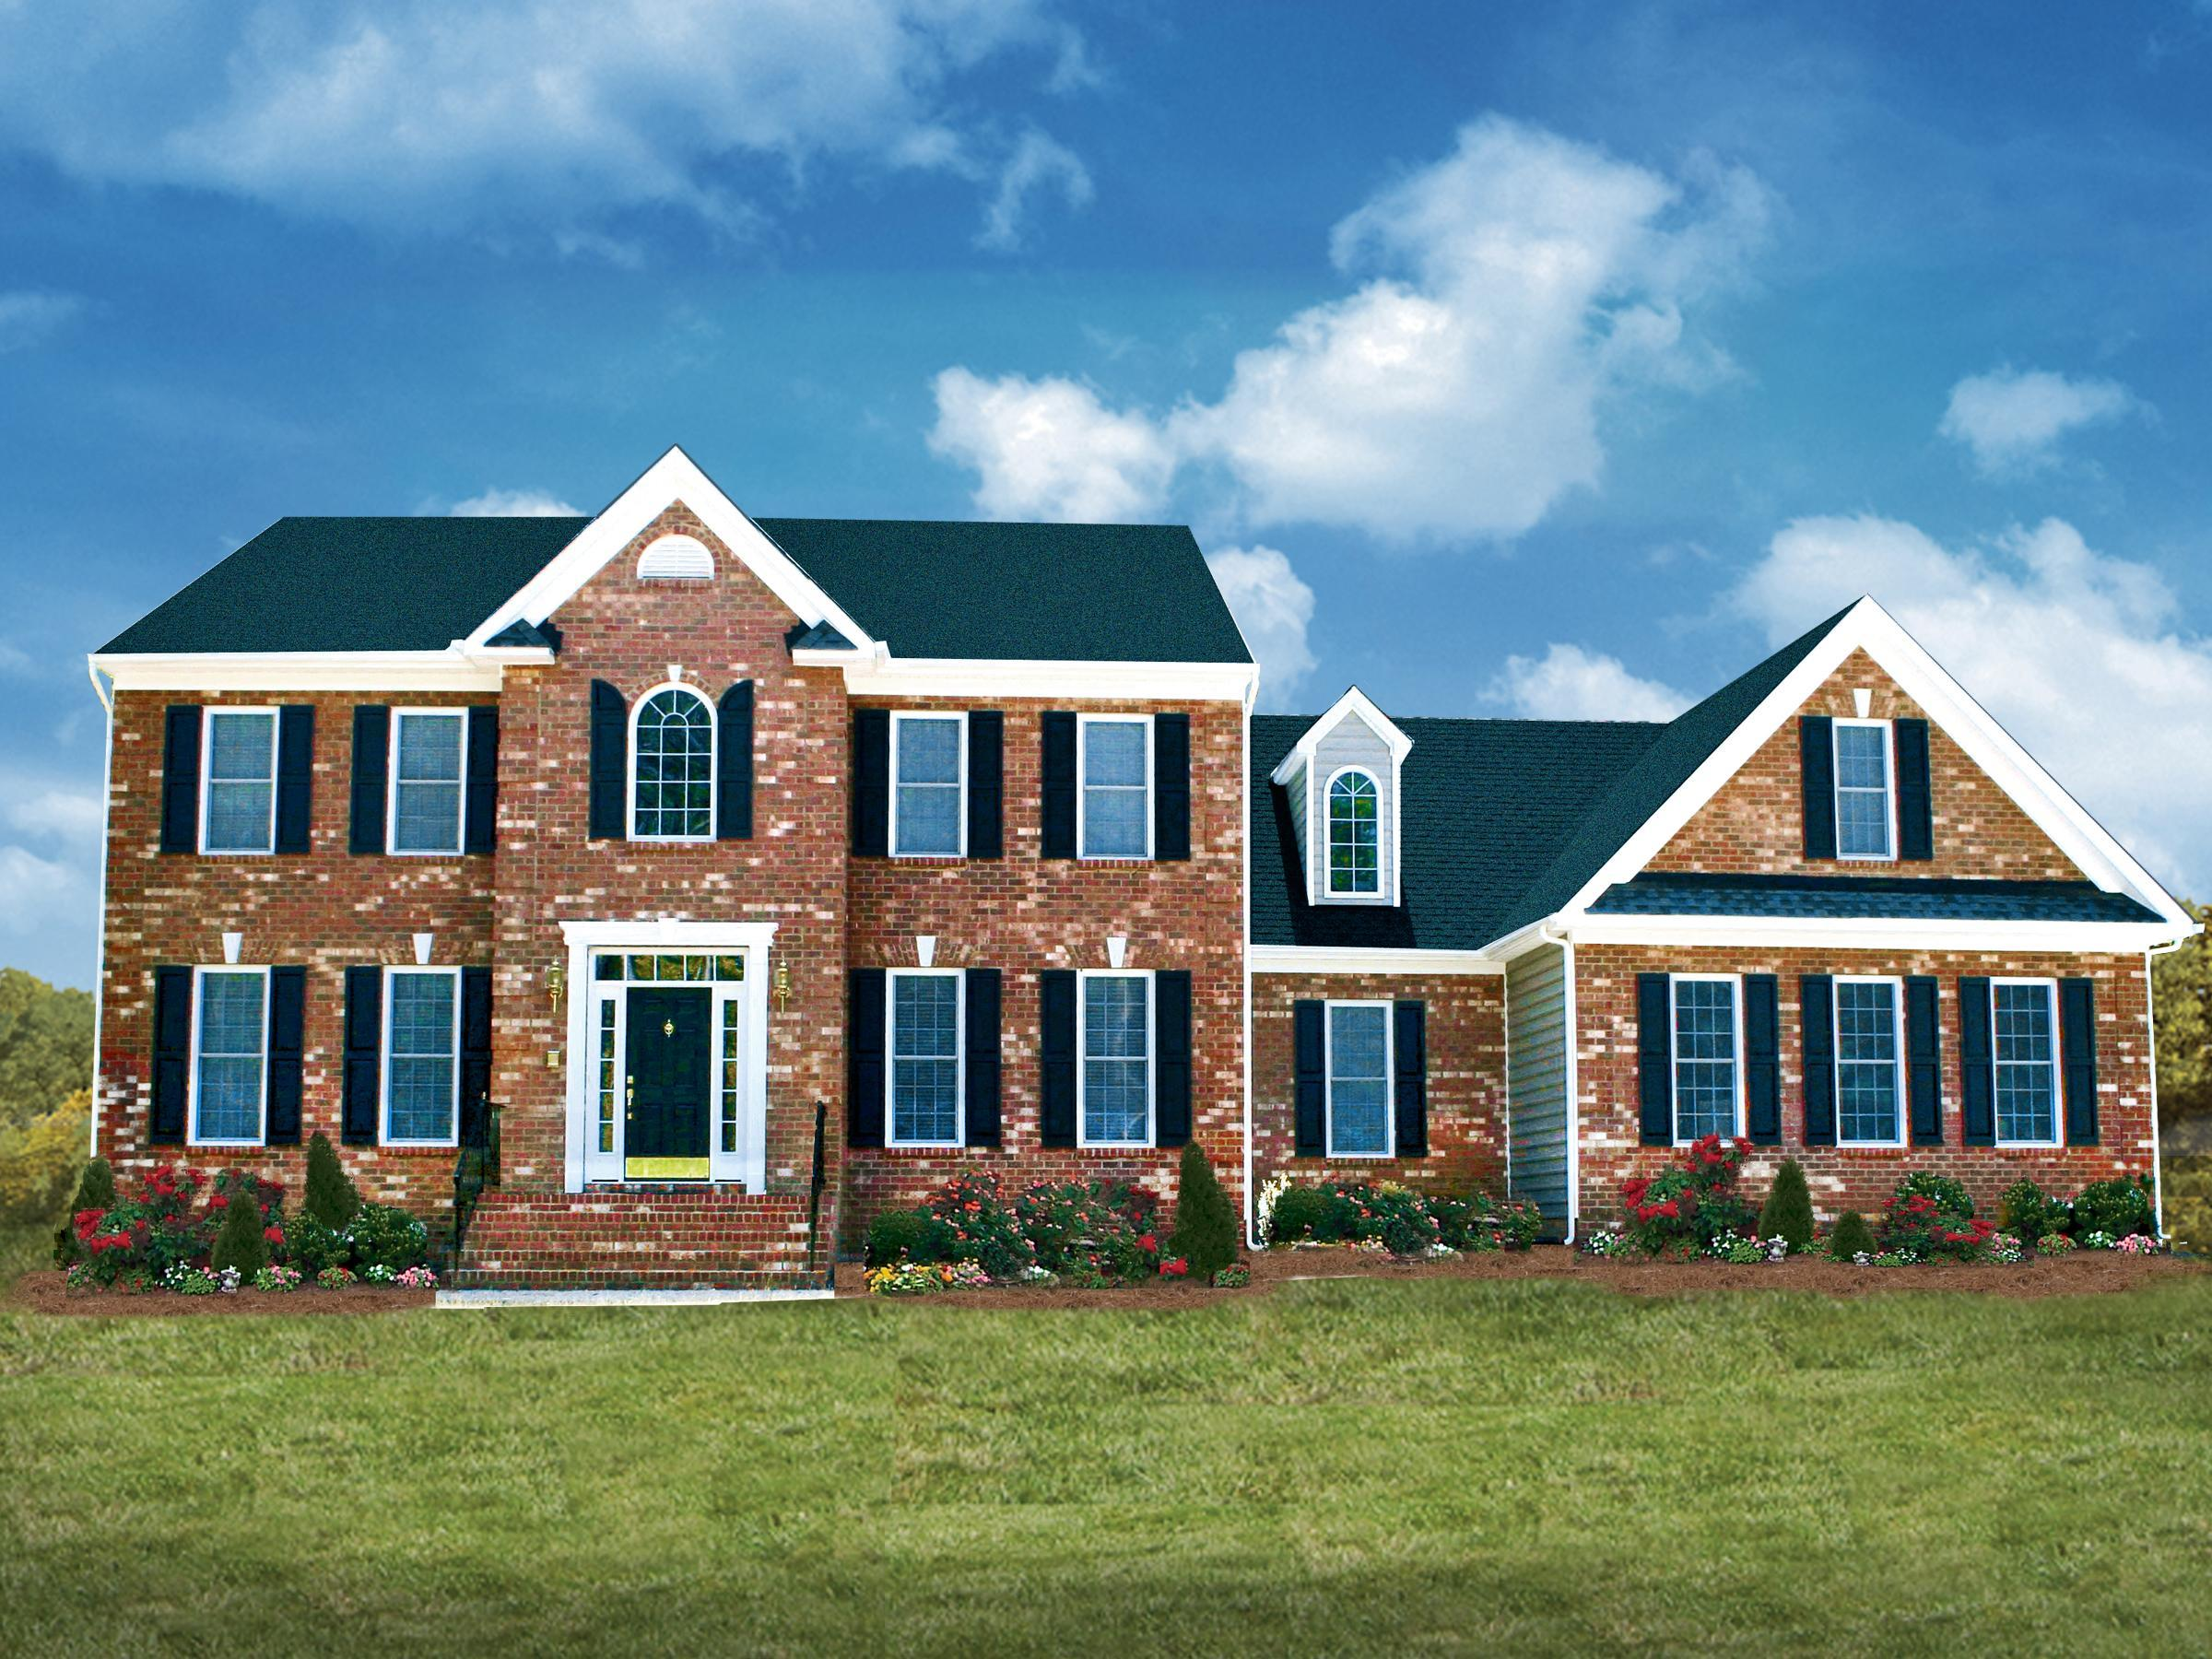 Lockridge Homes - Build on Your Lot - Charlotte, NC, Statesville, NC Homes & Land - Real Estate